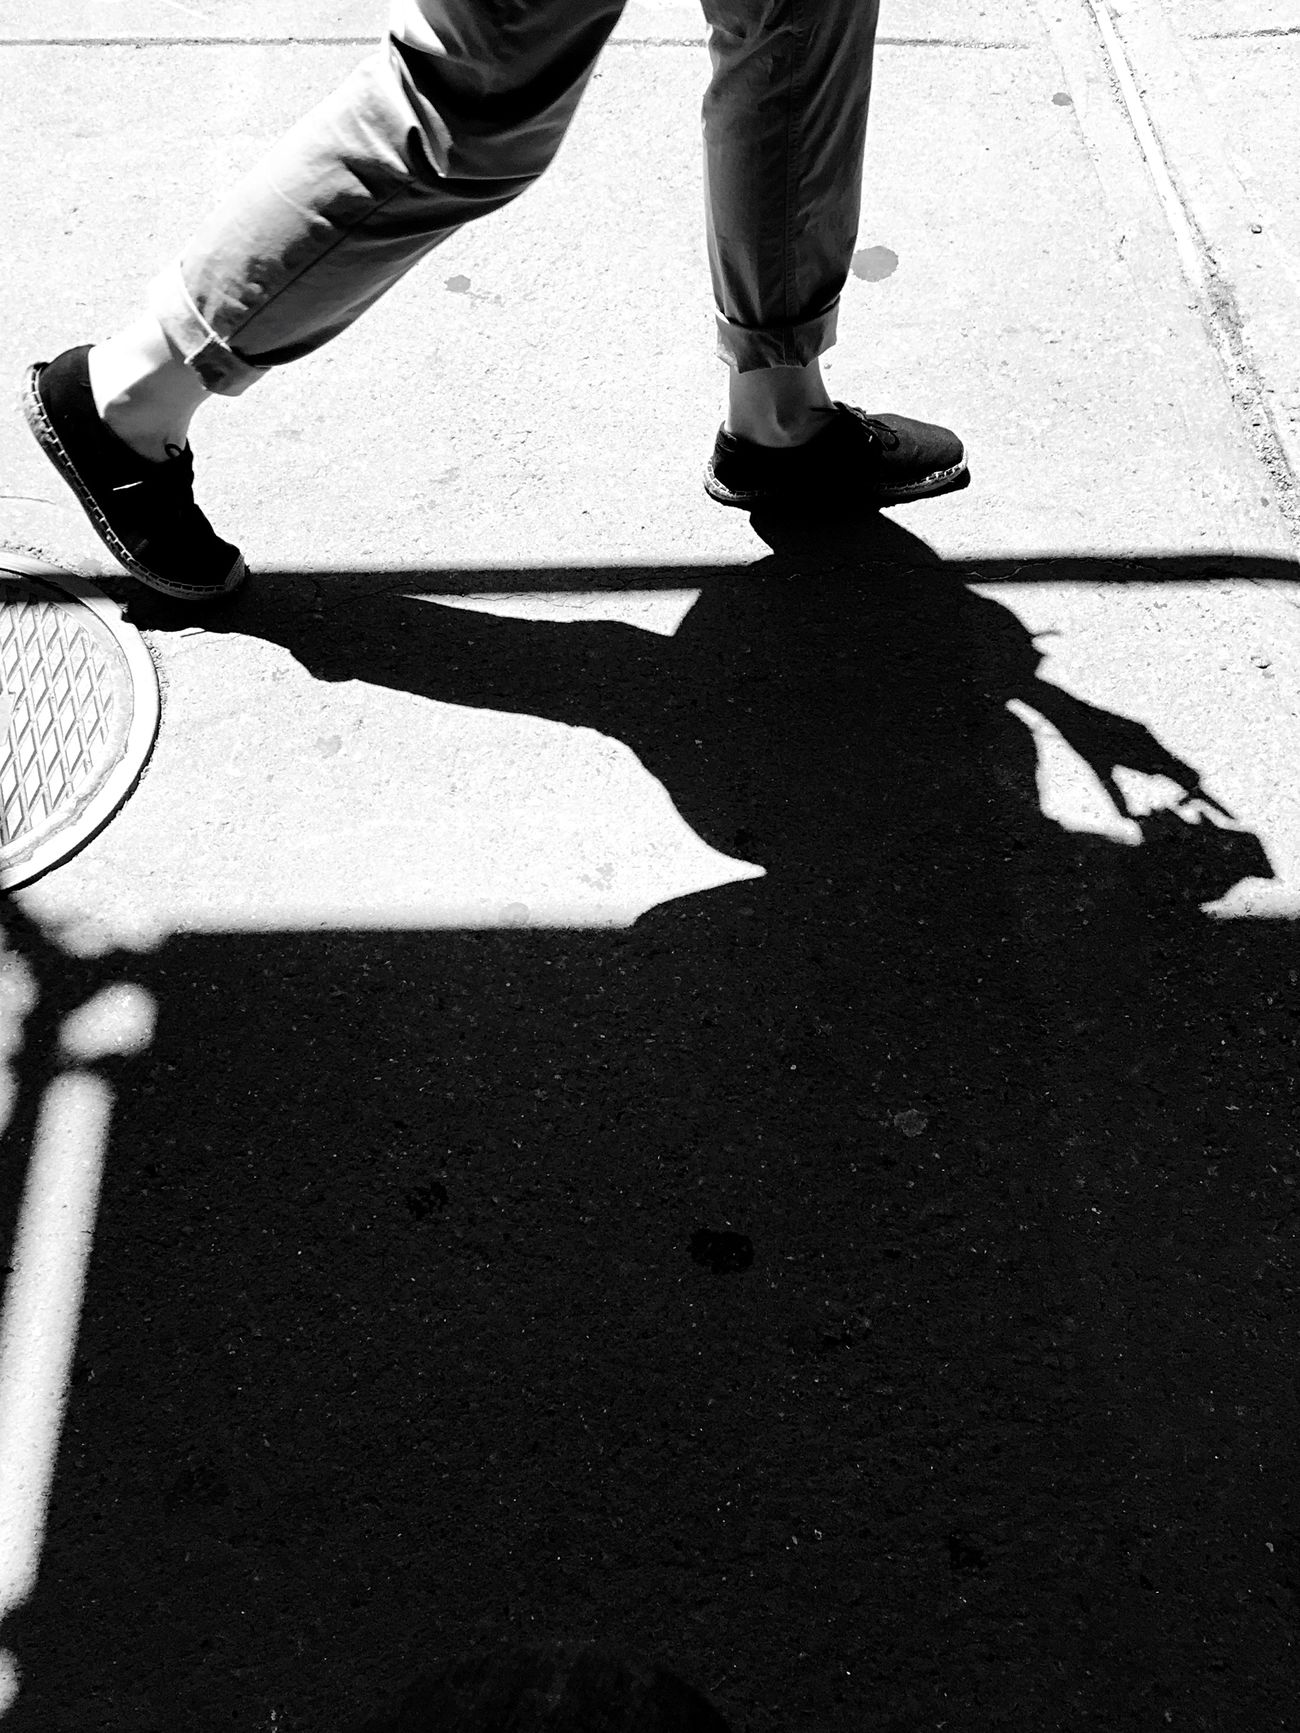 Walking Blackandwhite Life In Motion Shadow